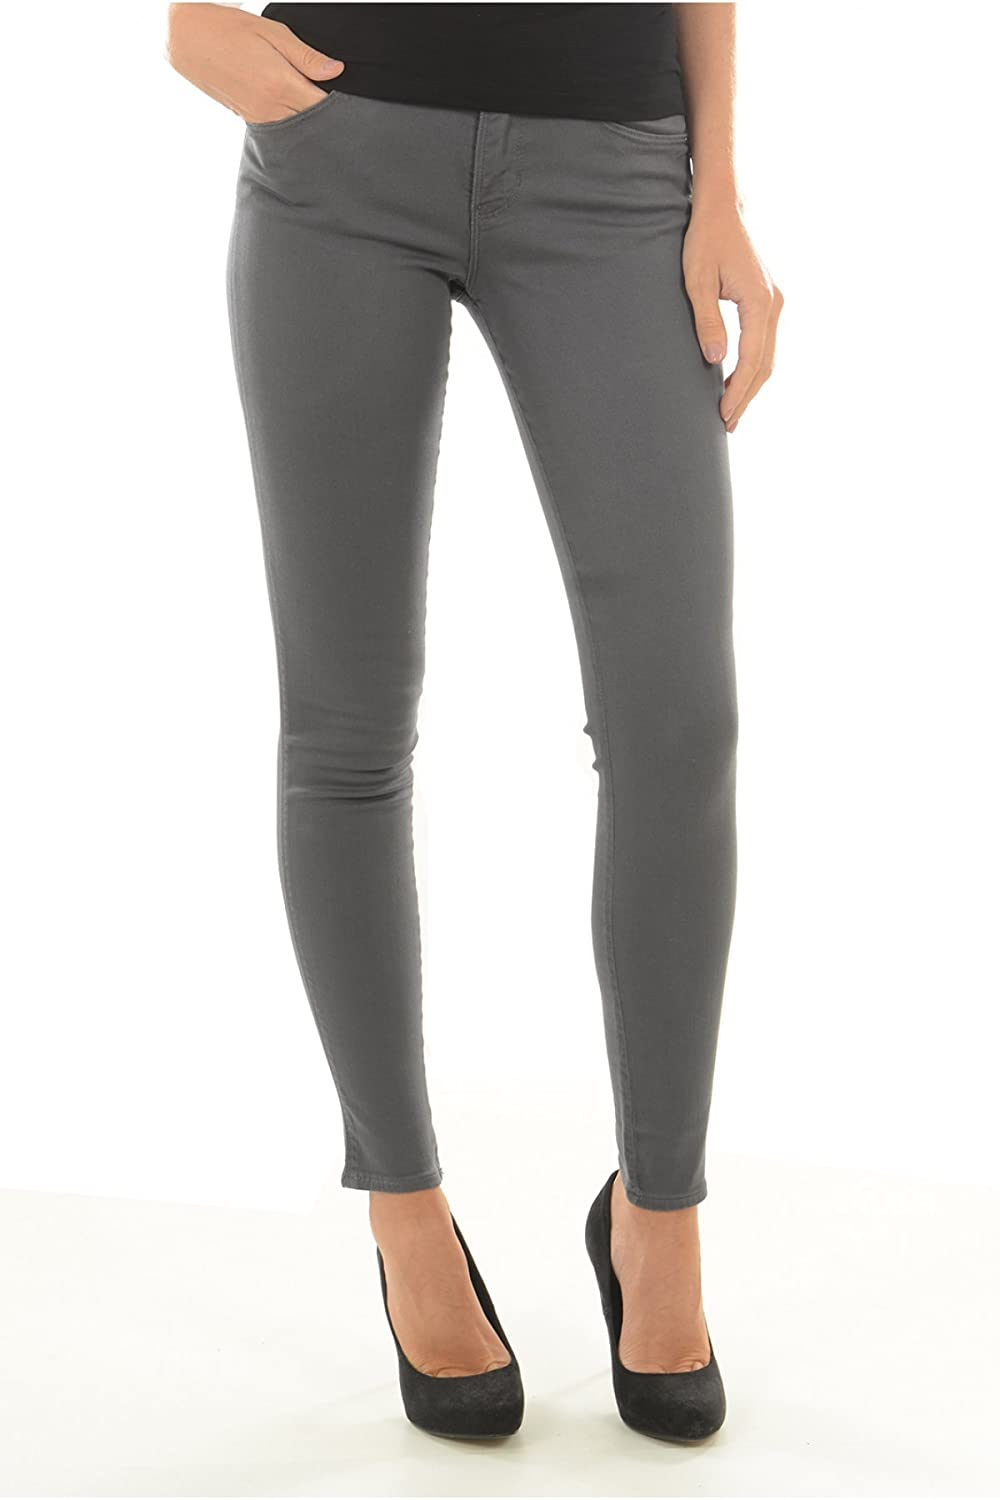 Guess Jeans Mujer Gris Oscuro W64AJ2W7YE1 - G903